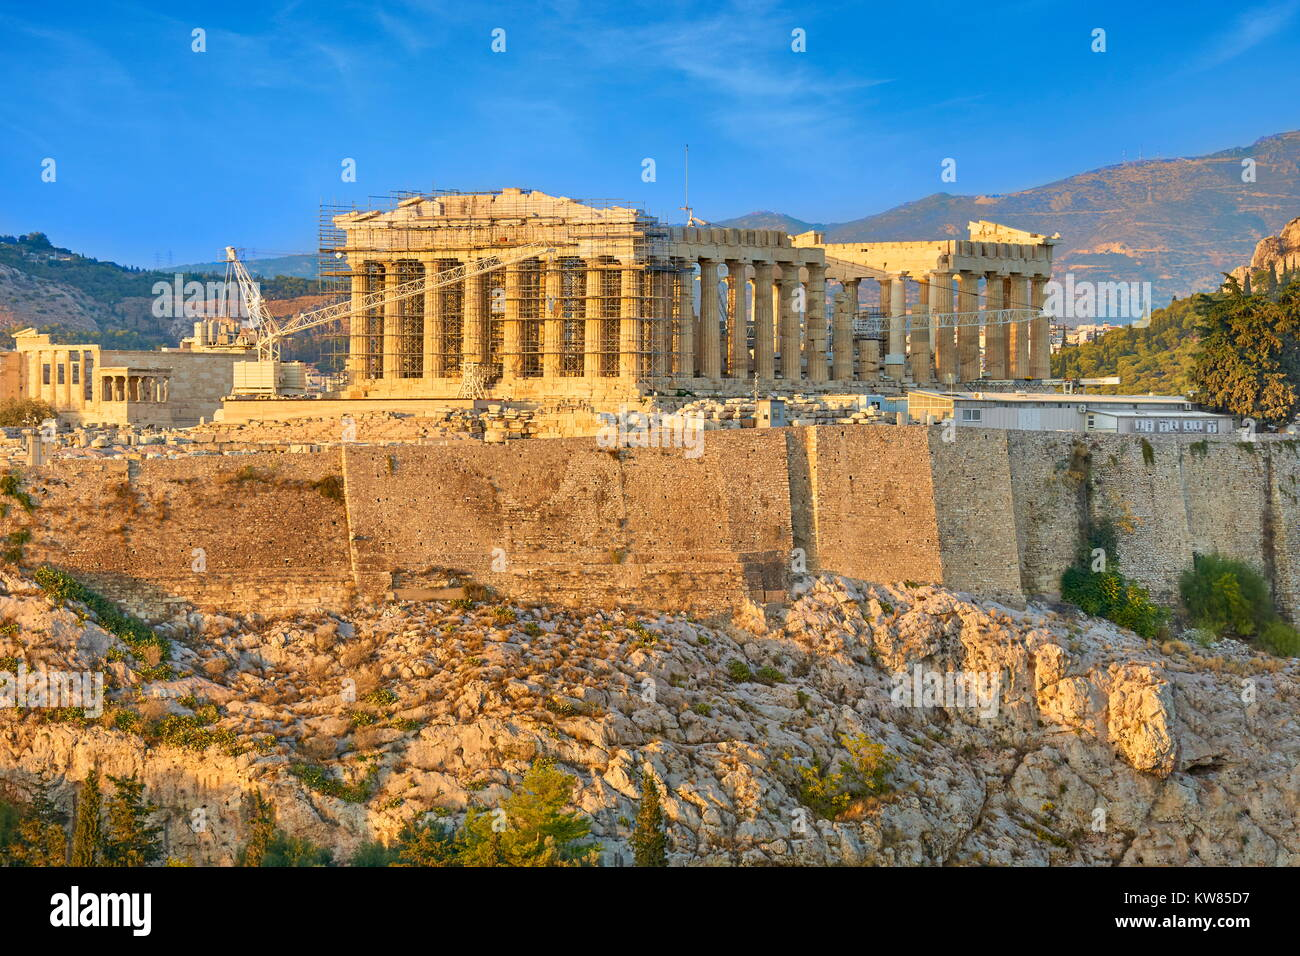 View at Parthenon at sunset time, Acropolis, Athens, Greece - Stock Image